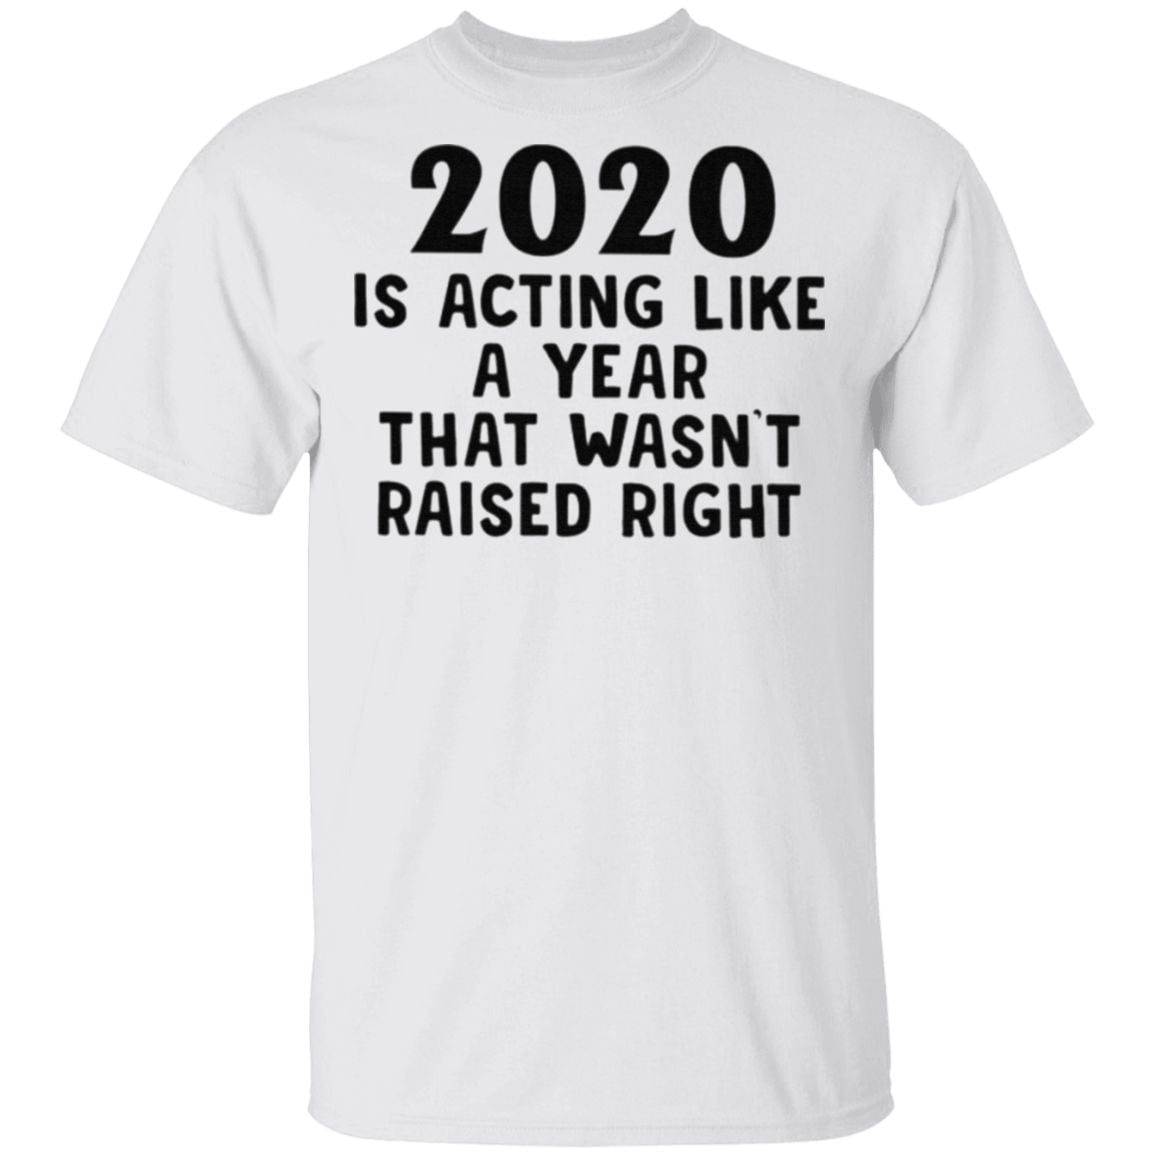 2020 Is Acting Like A Year That Wasn't Raised Right T Shirt